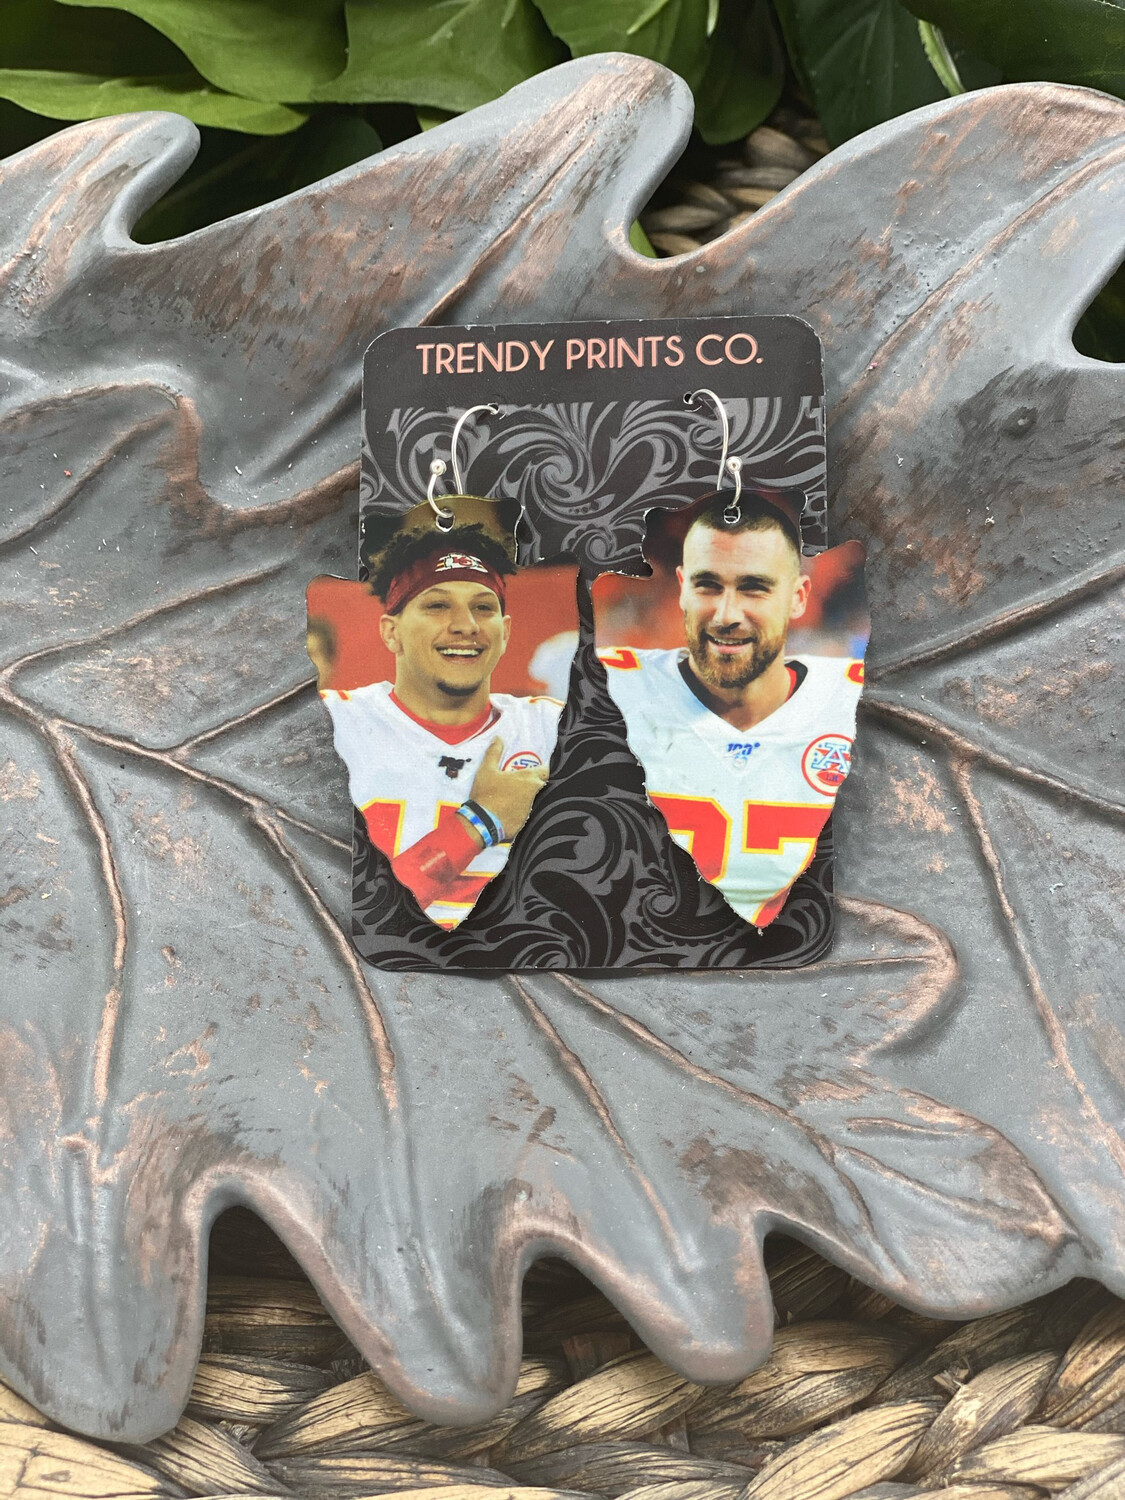 CHIEFS PHOTO ARROWHEAD LEATHER EARRINGS